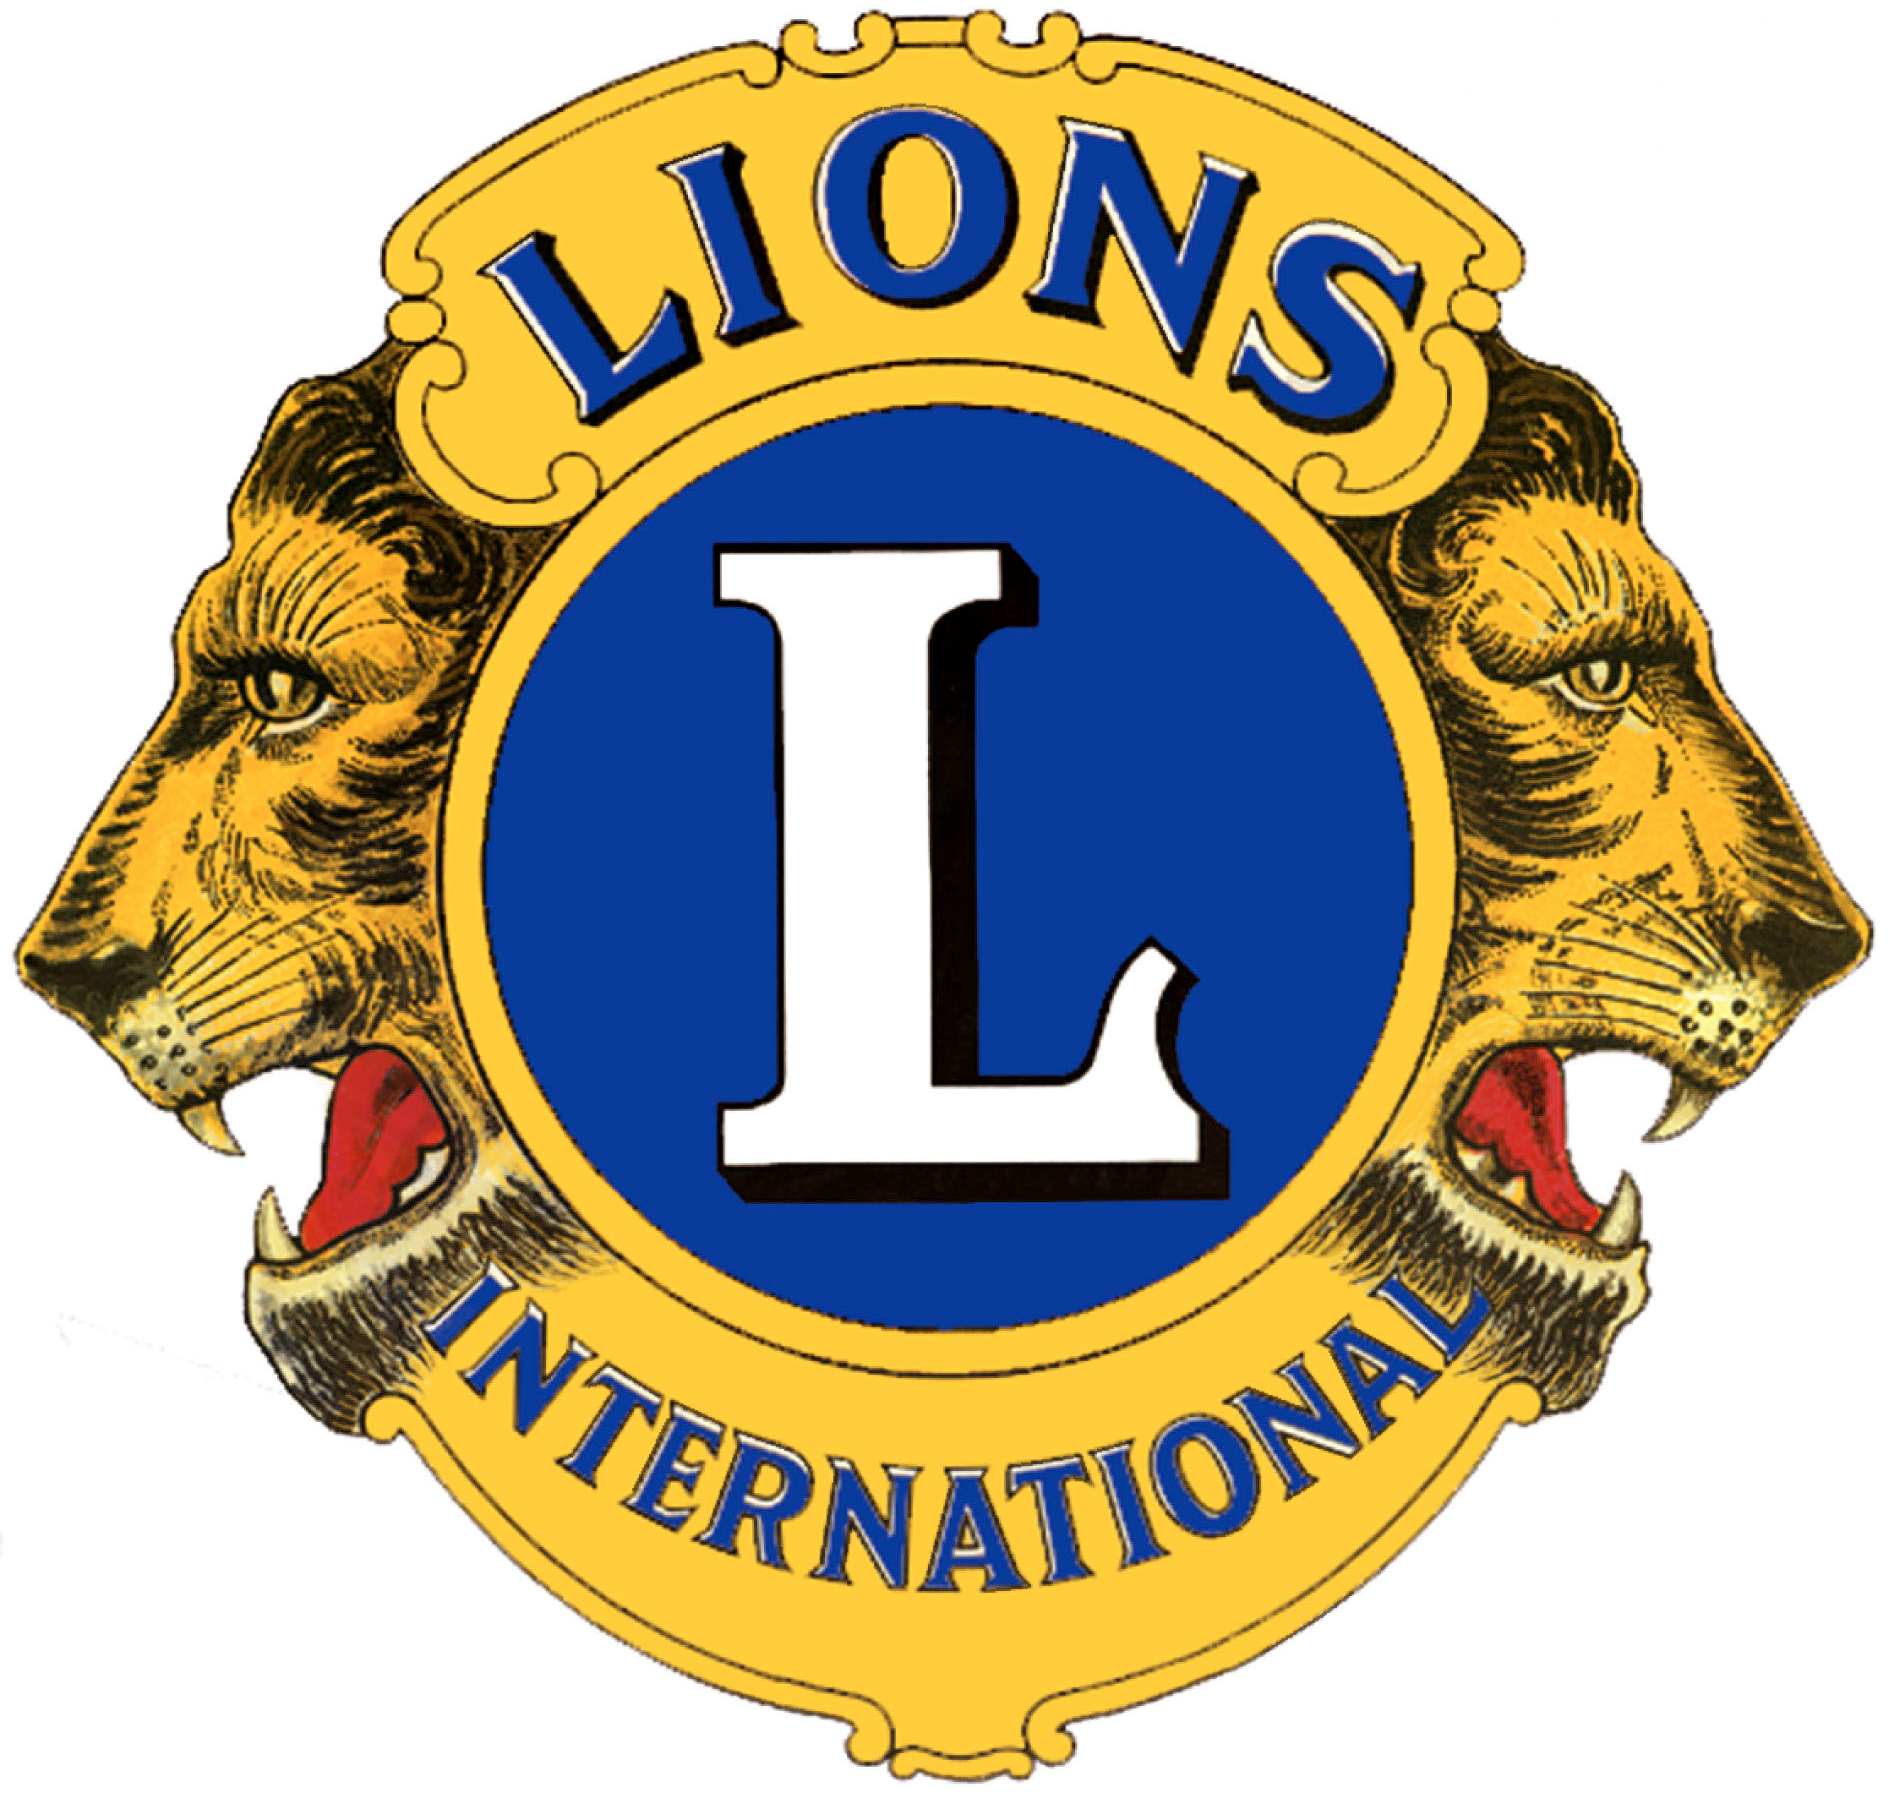 Trempealeau Lions Club